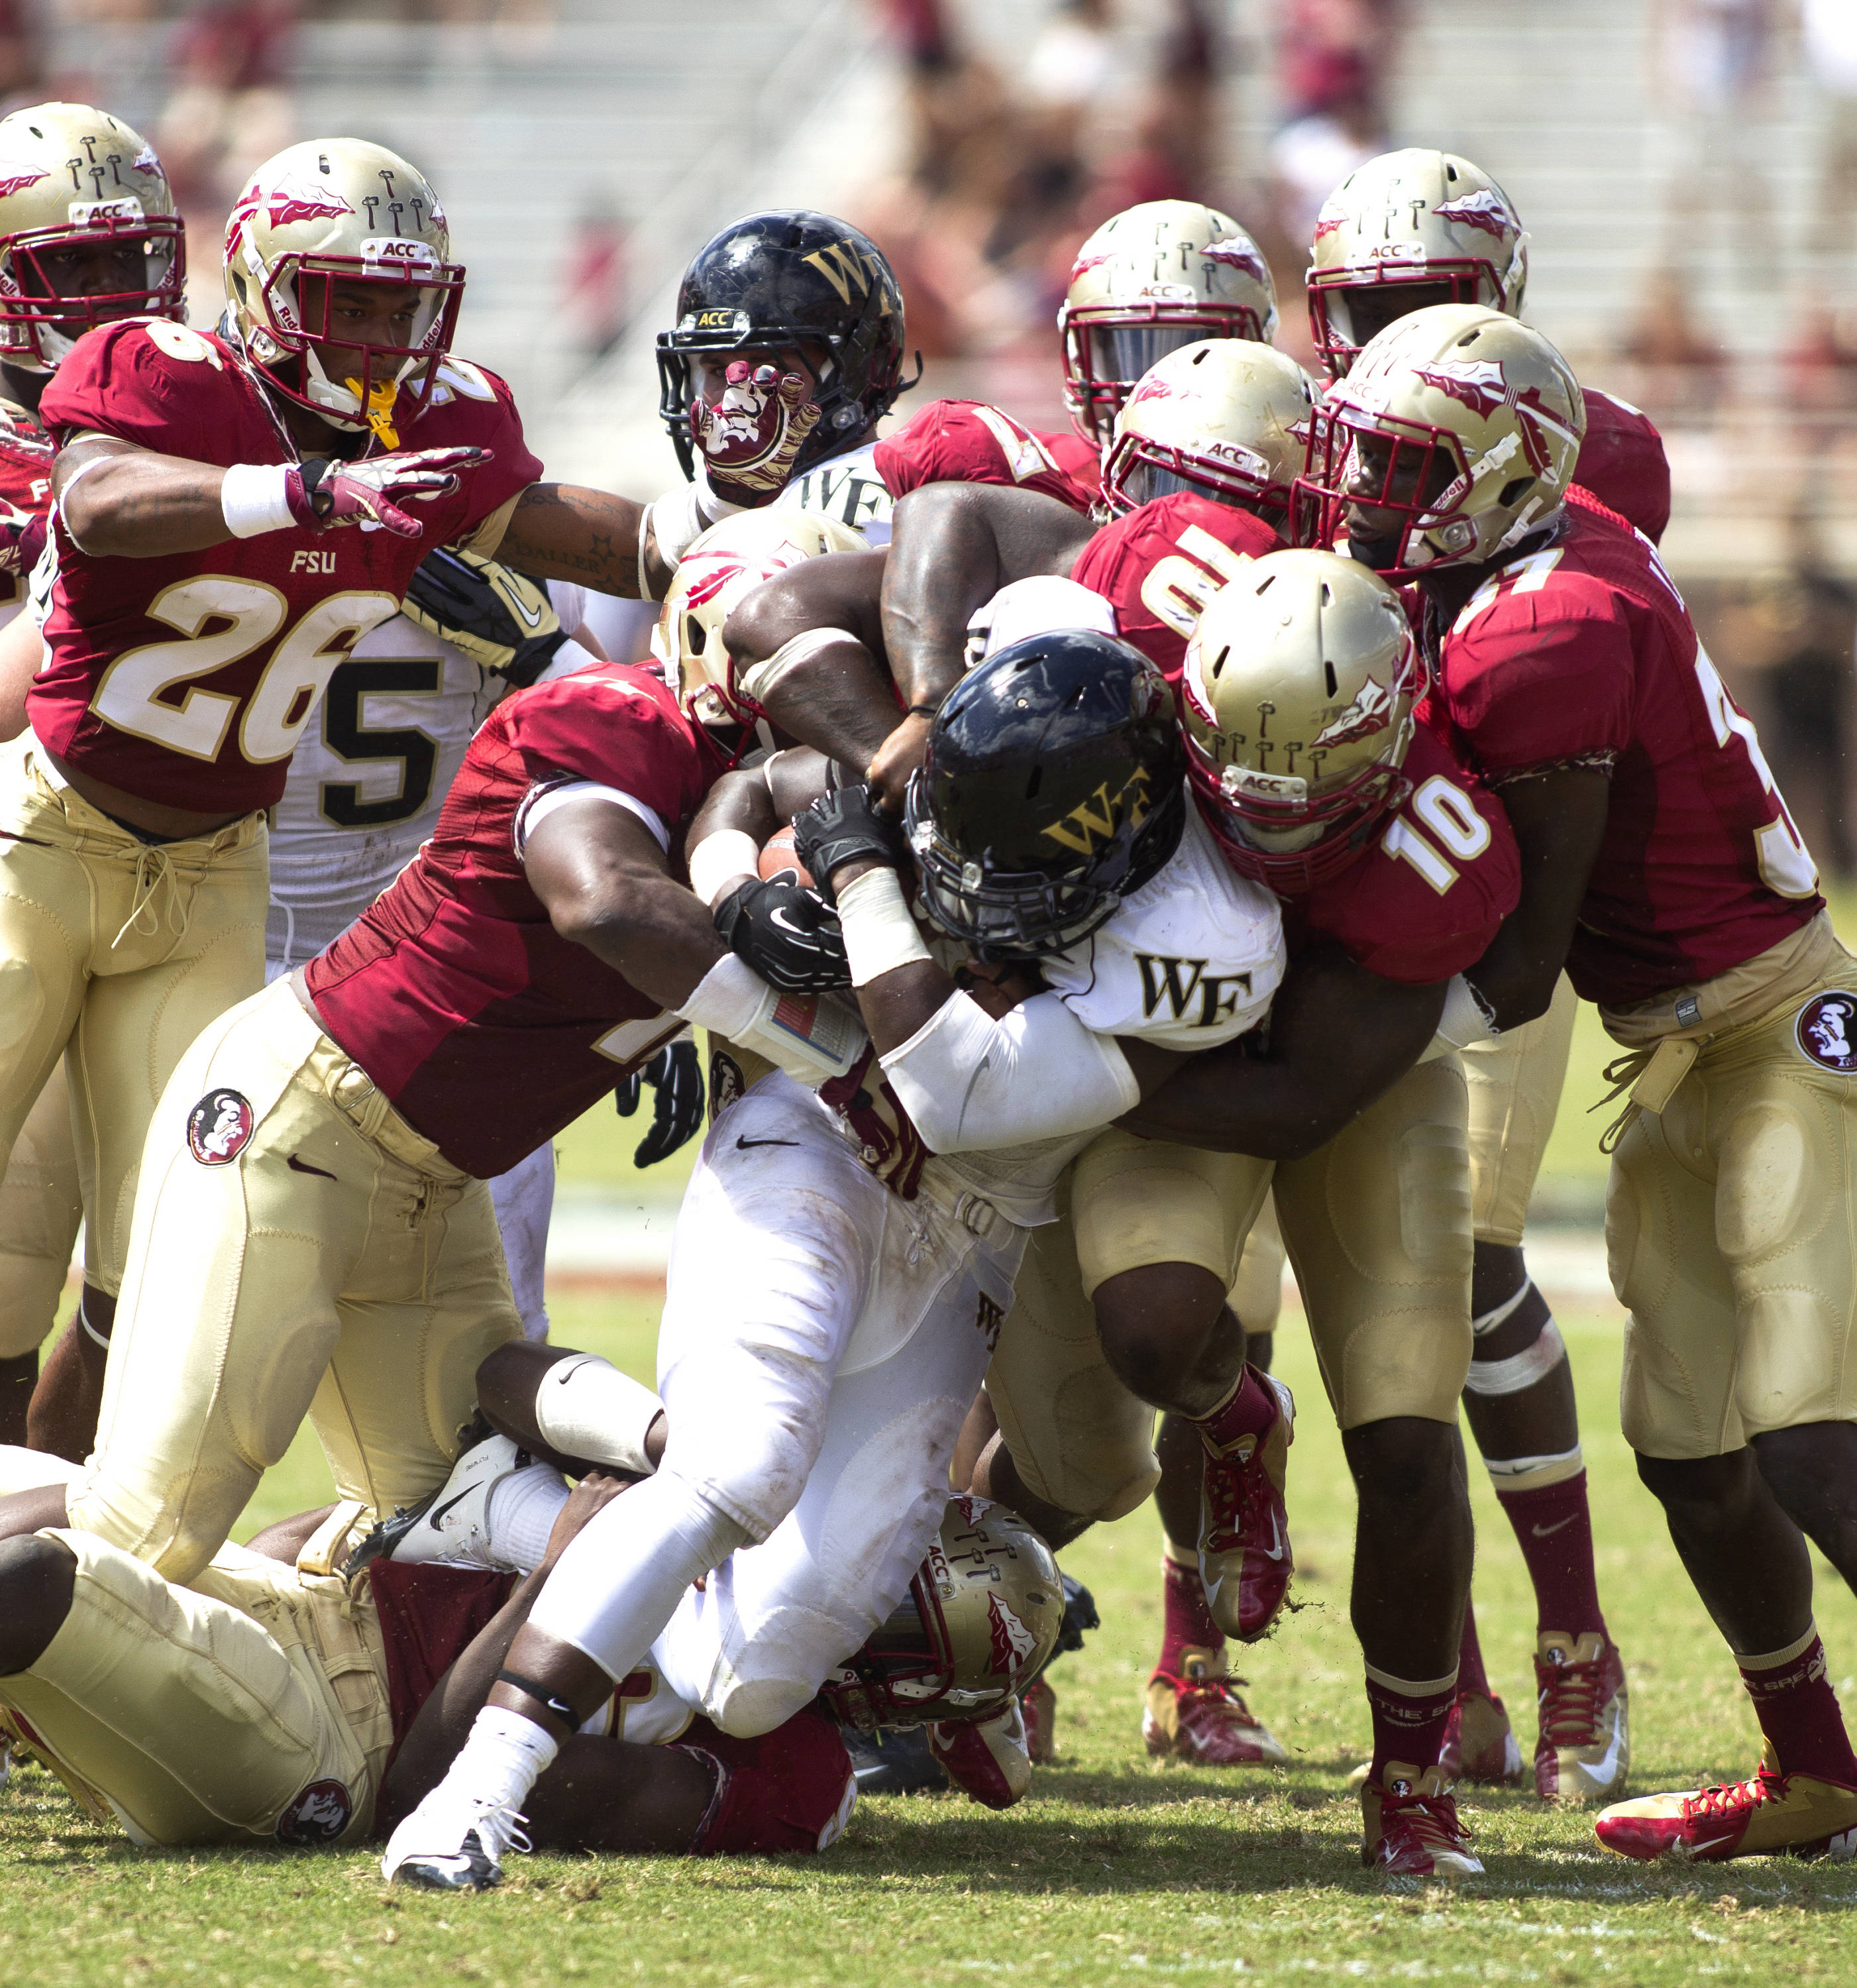 Team defensive stop, FSU vs Wake Forest, 9/15/12 (Photo by Steve Musco)